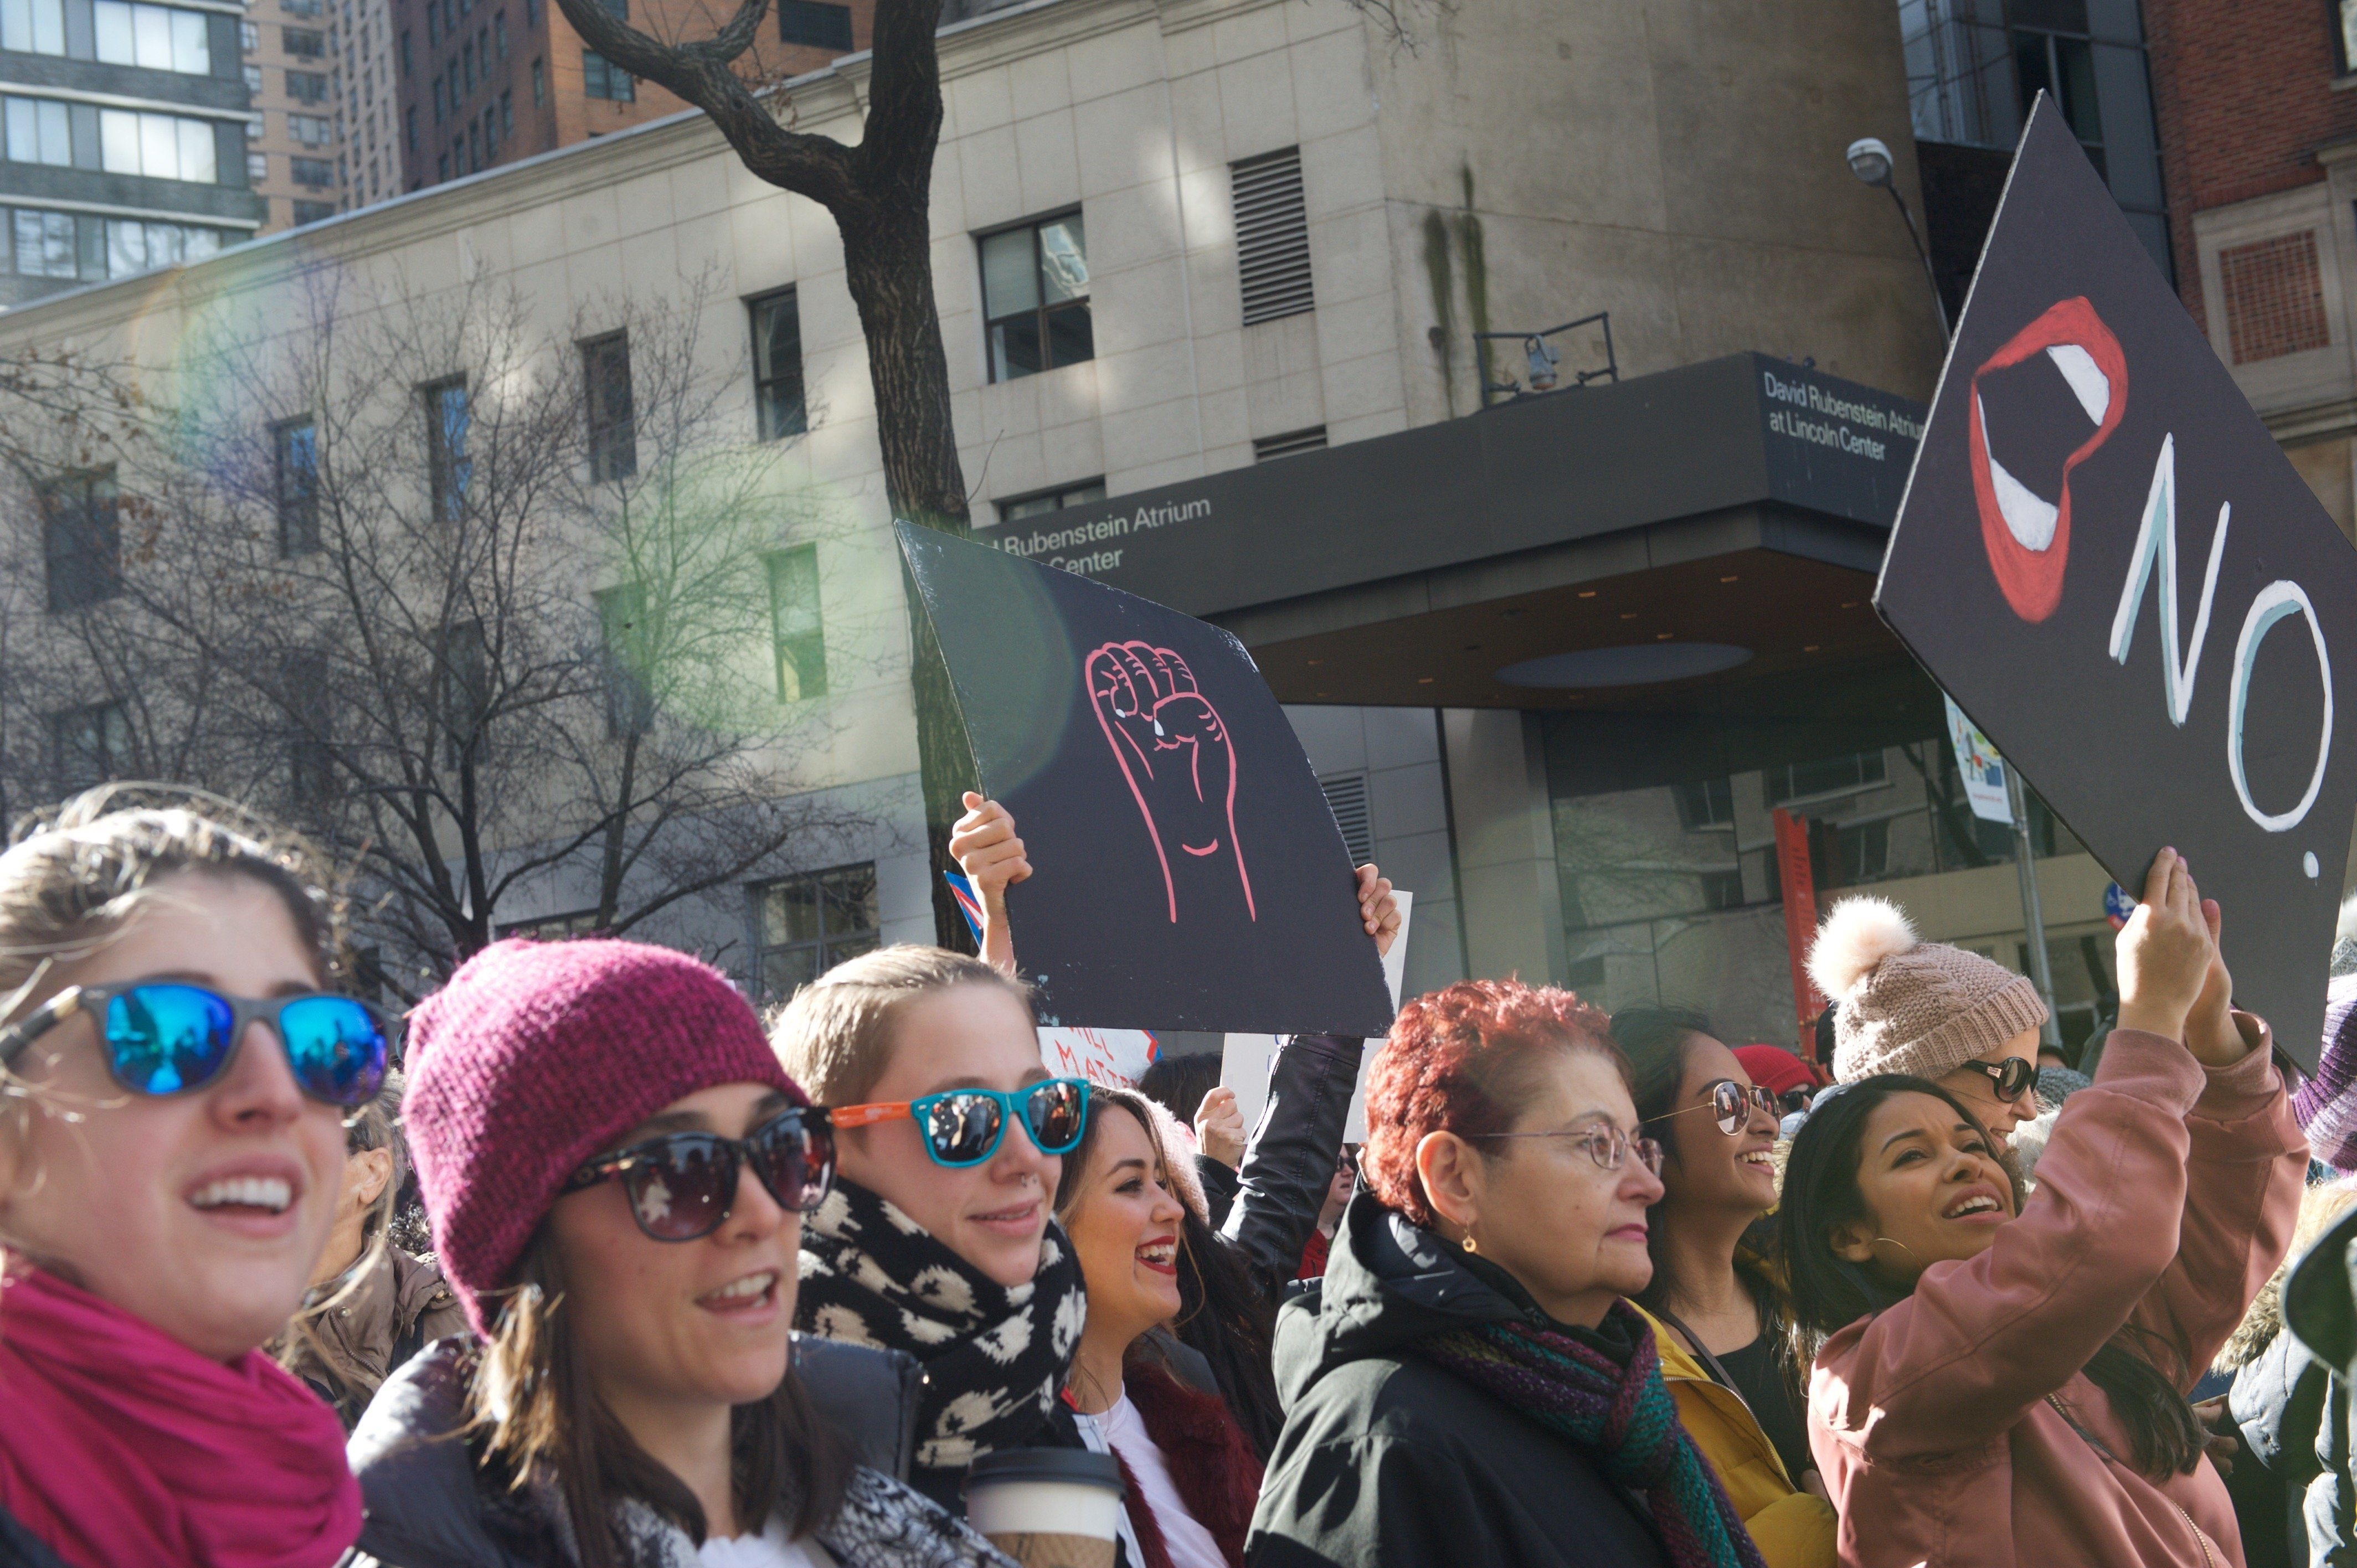 Marchers chant and hold up signs at the 2018 Women's March in New York